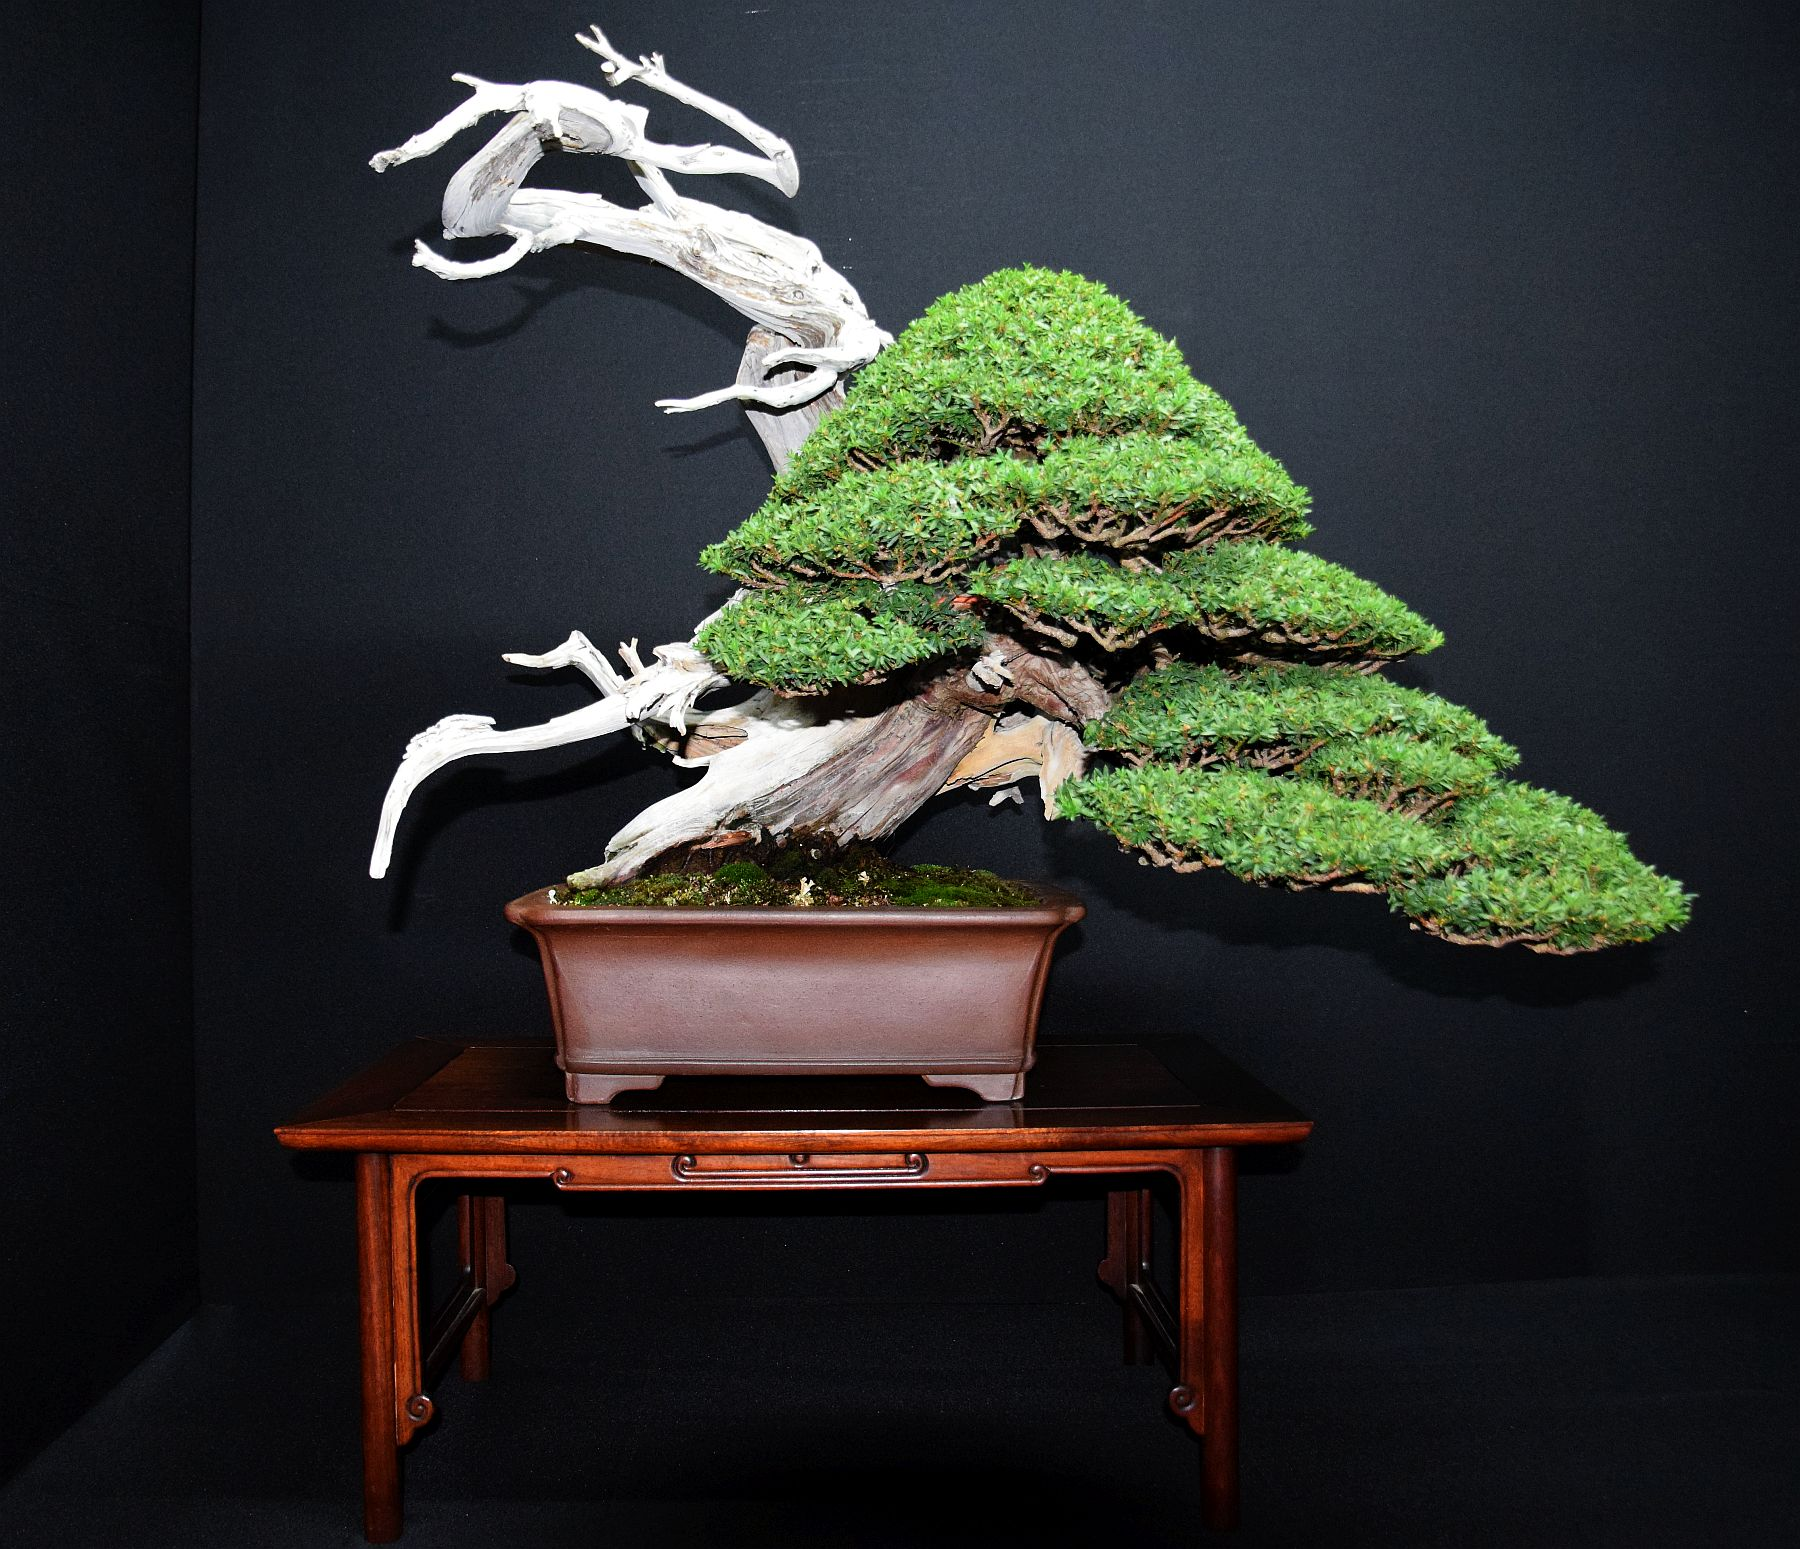 bonsai-museum-luis-vallejo-031